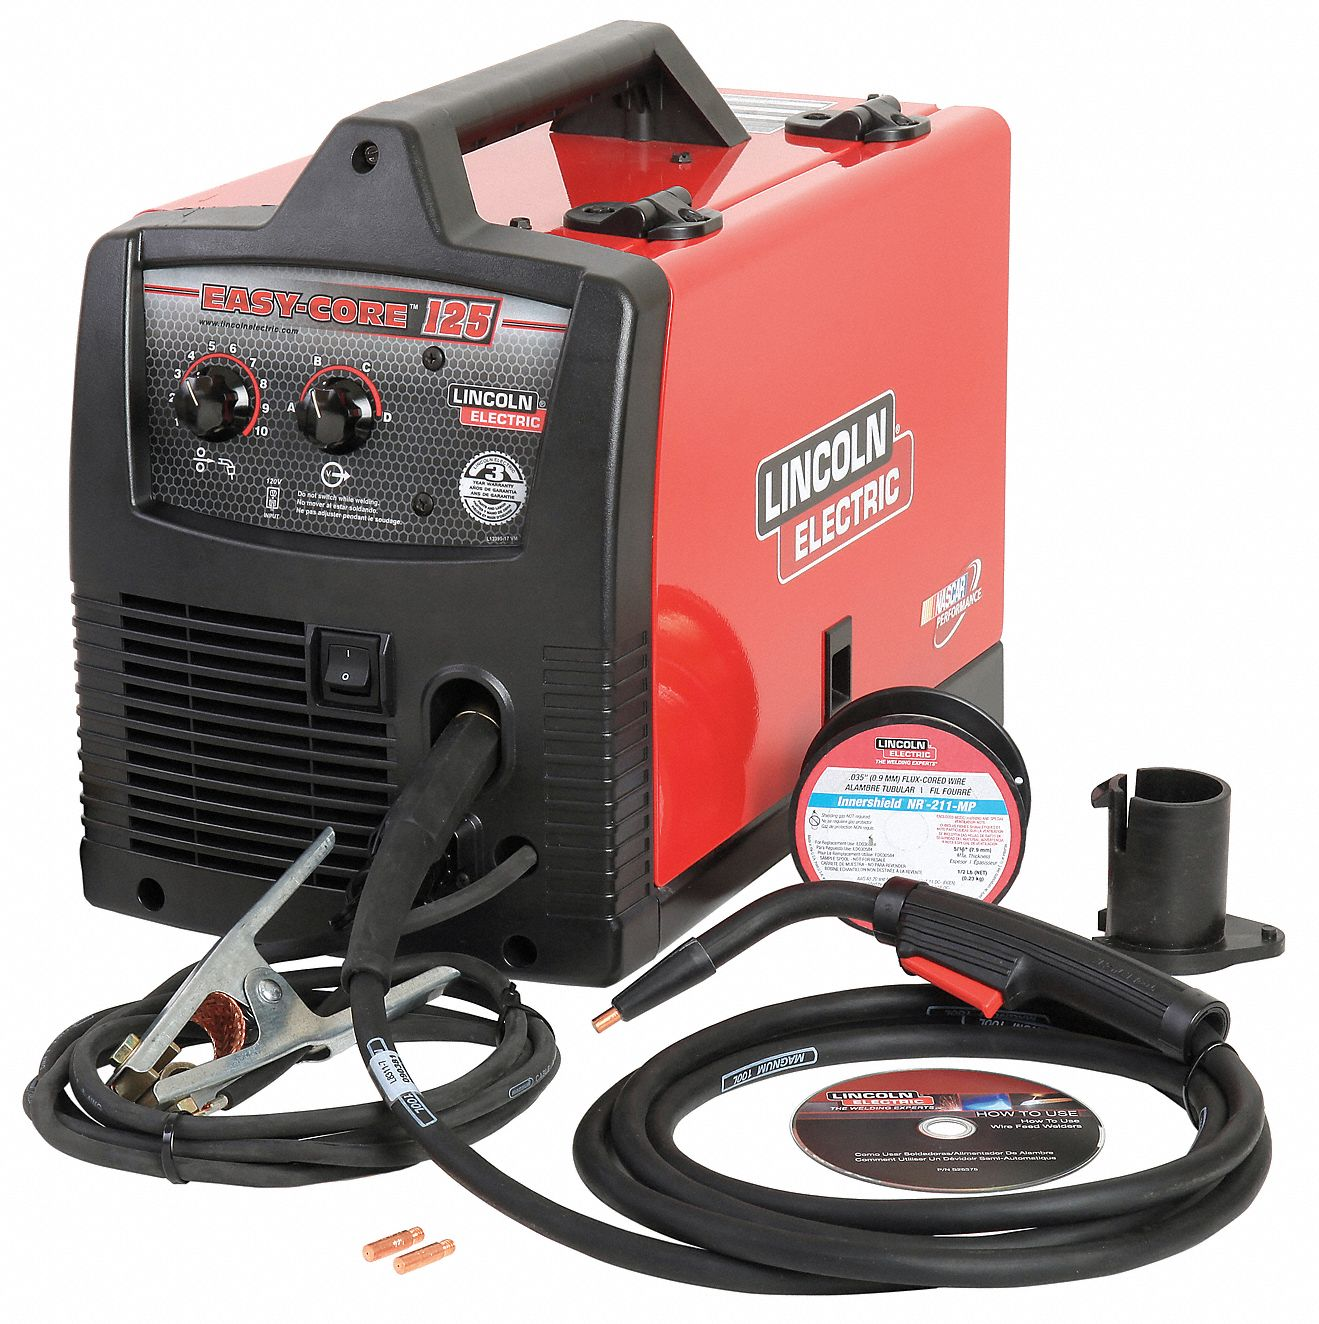 Lincoln electric flux core welder easy core 125 series for Lincoln electric motors catalog